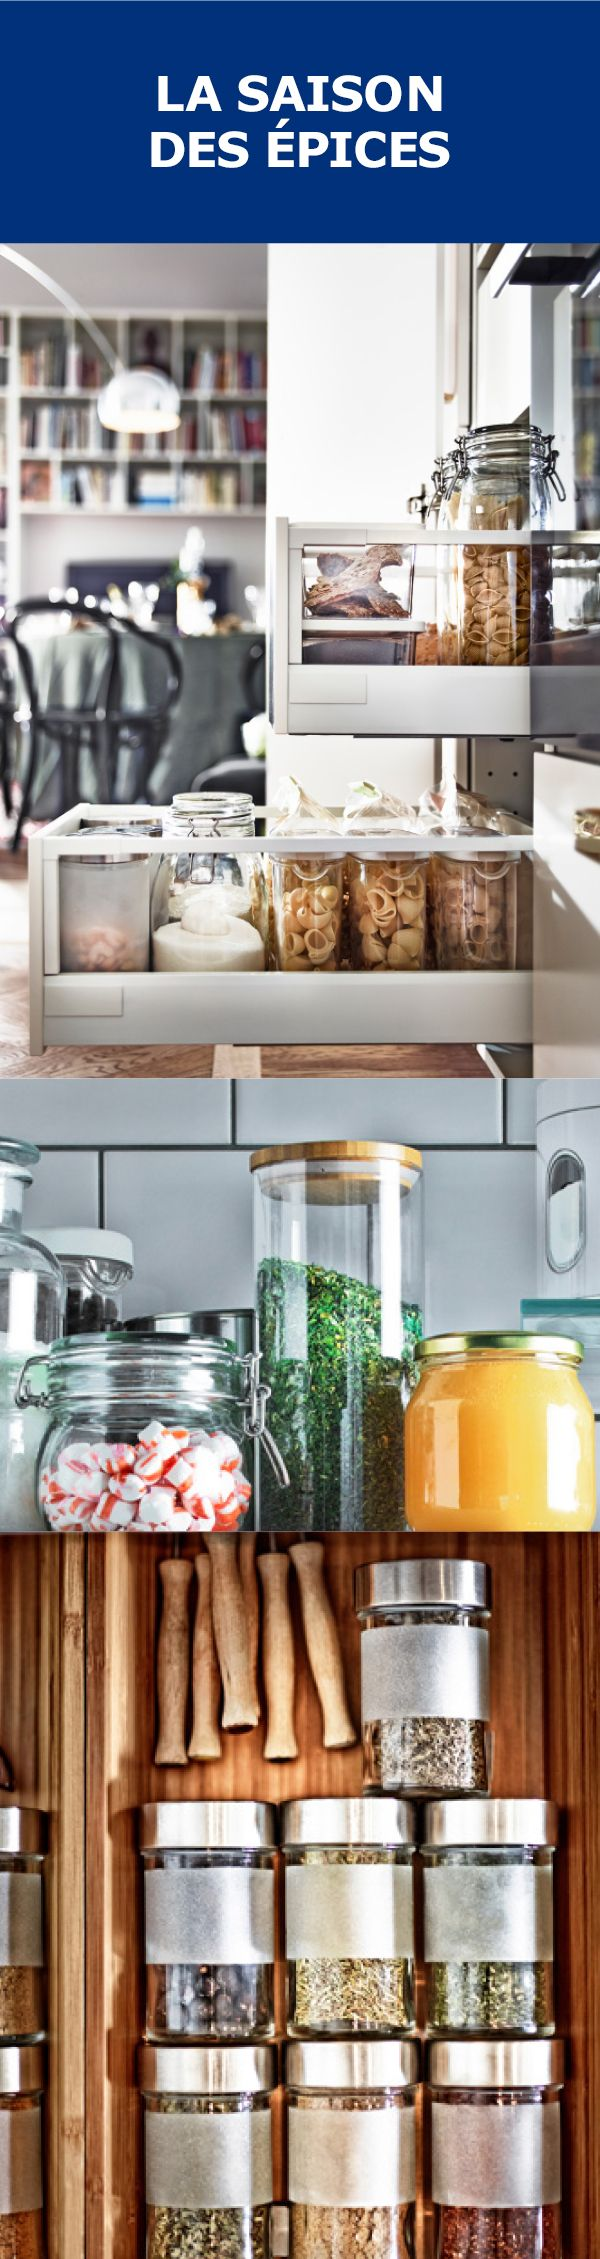 65 best images about cuisiner on pinterest ikea ikea cabinets and armoires